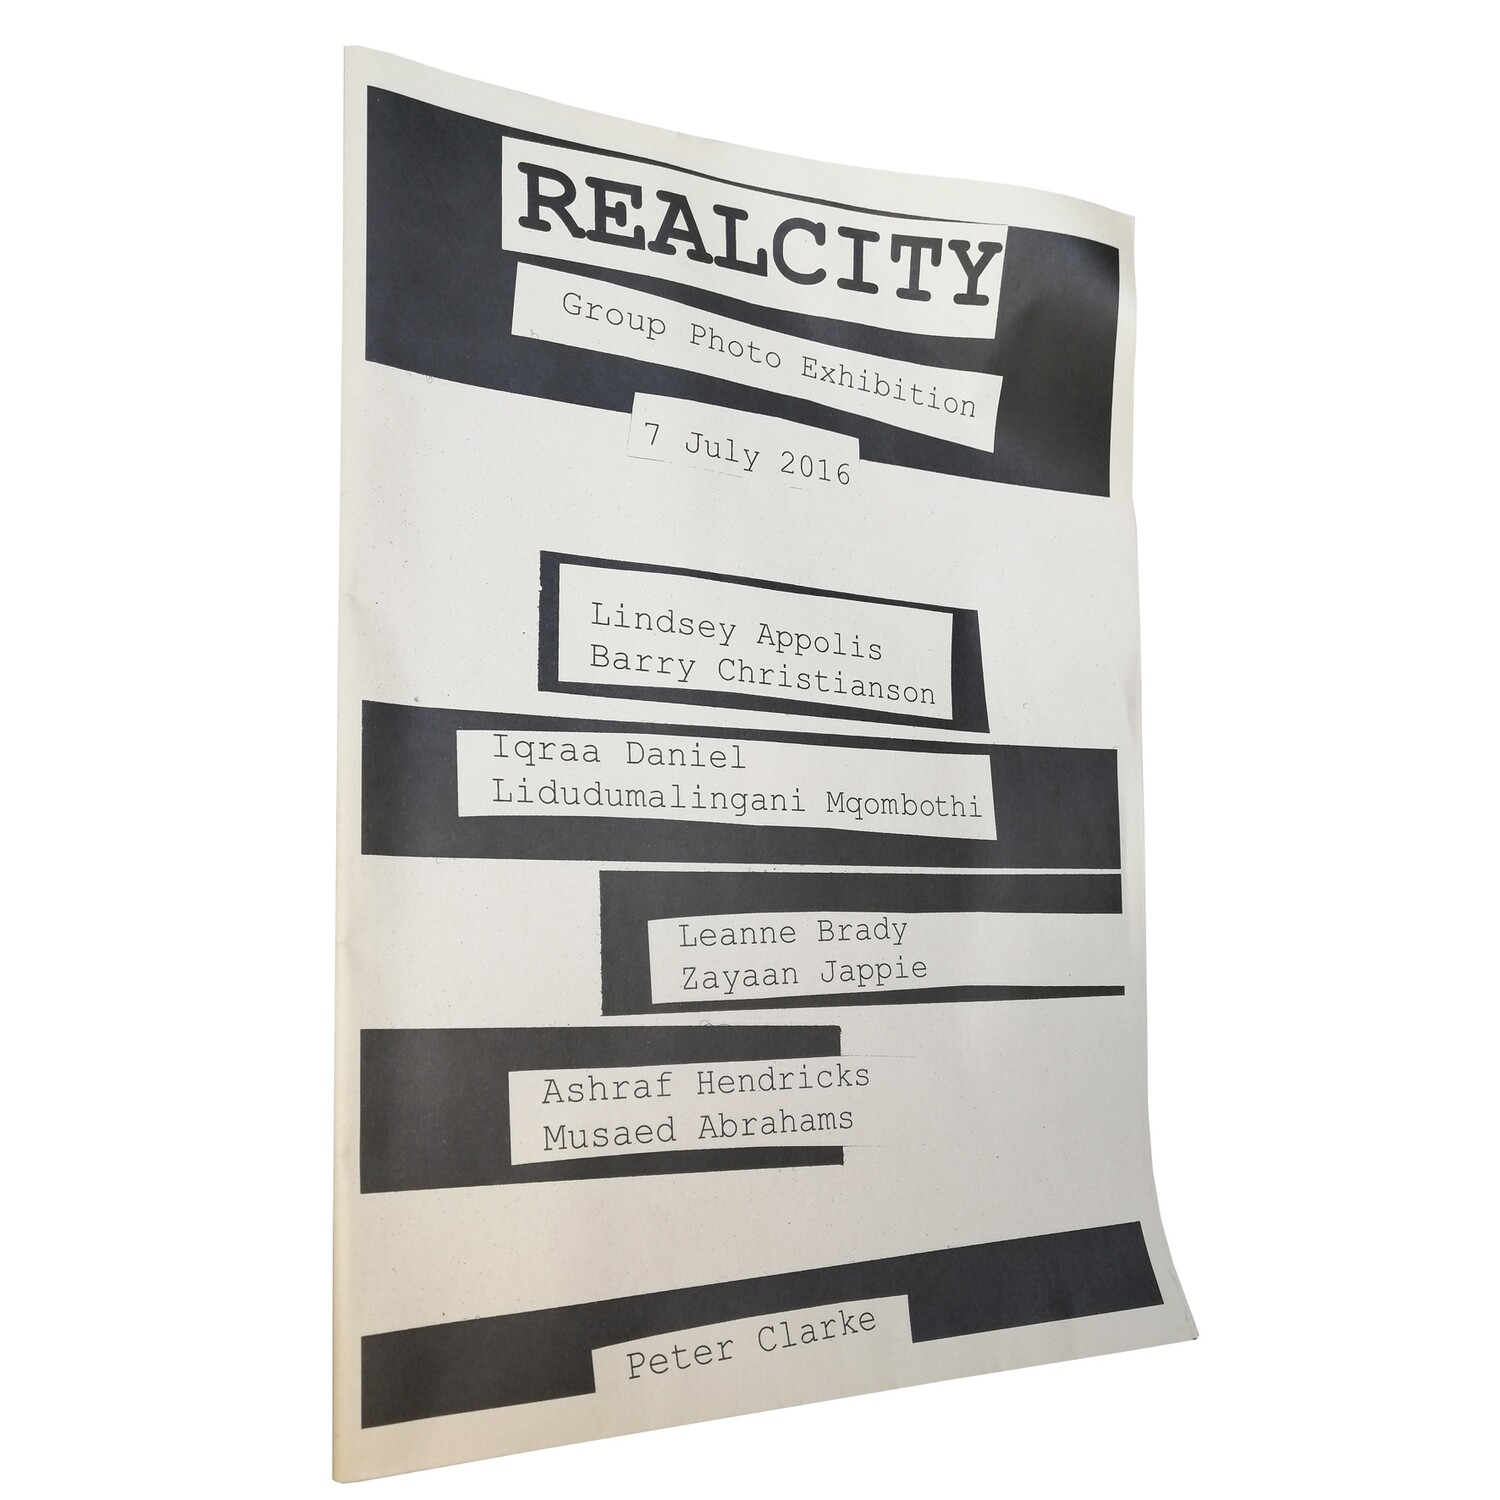 Real City: A Group Photo Exhibition